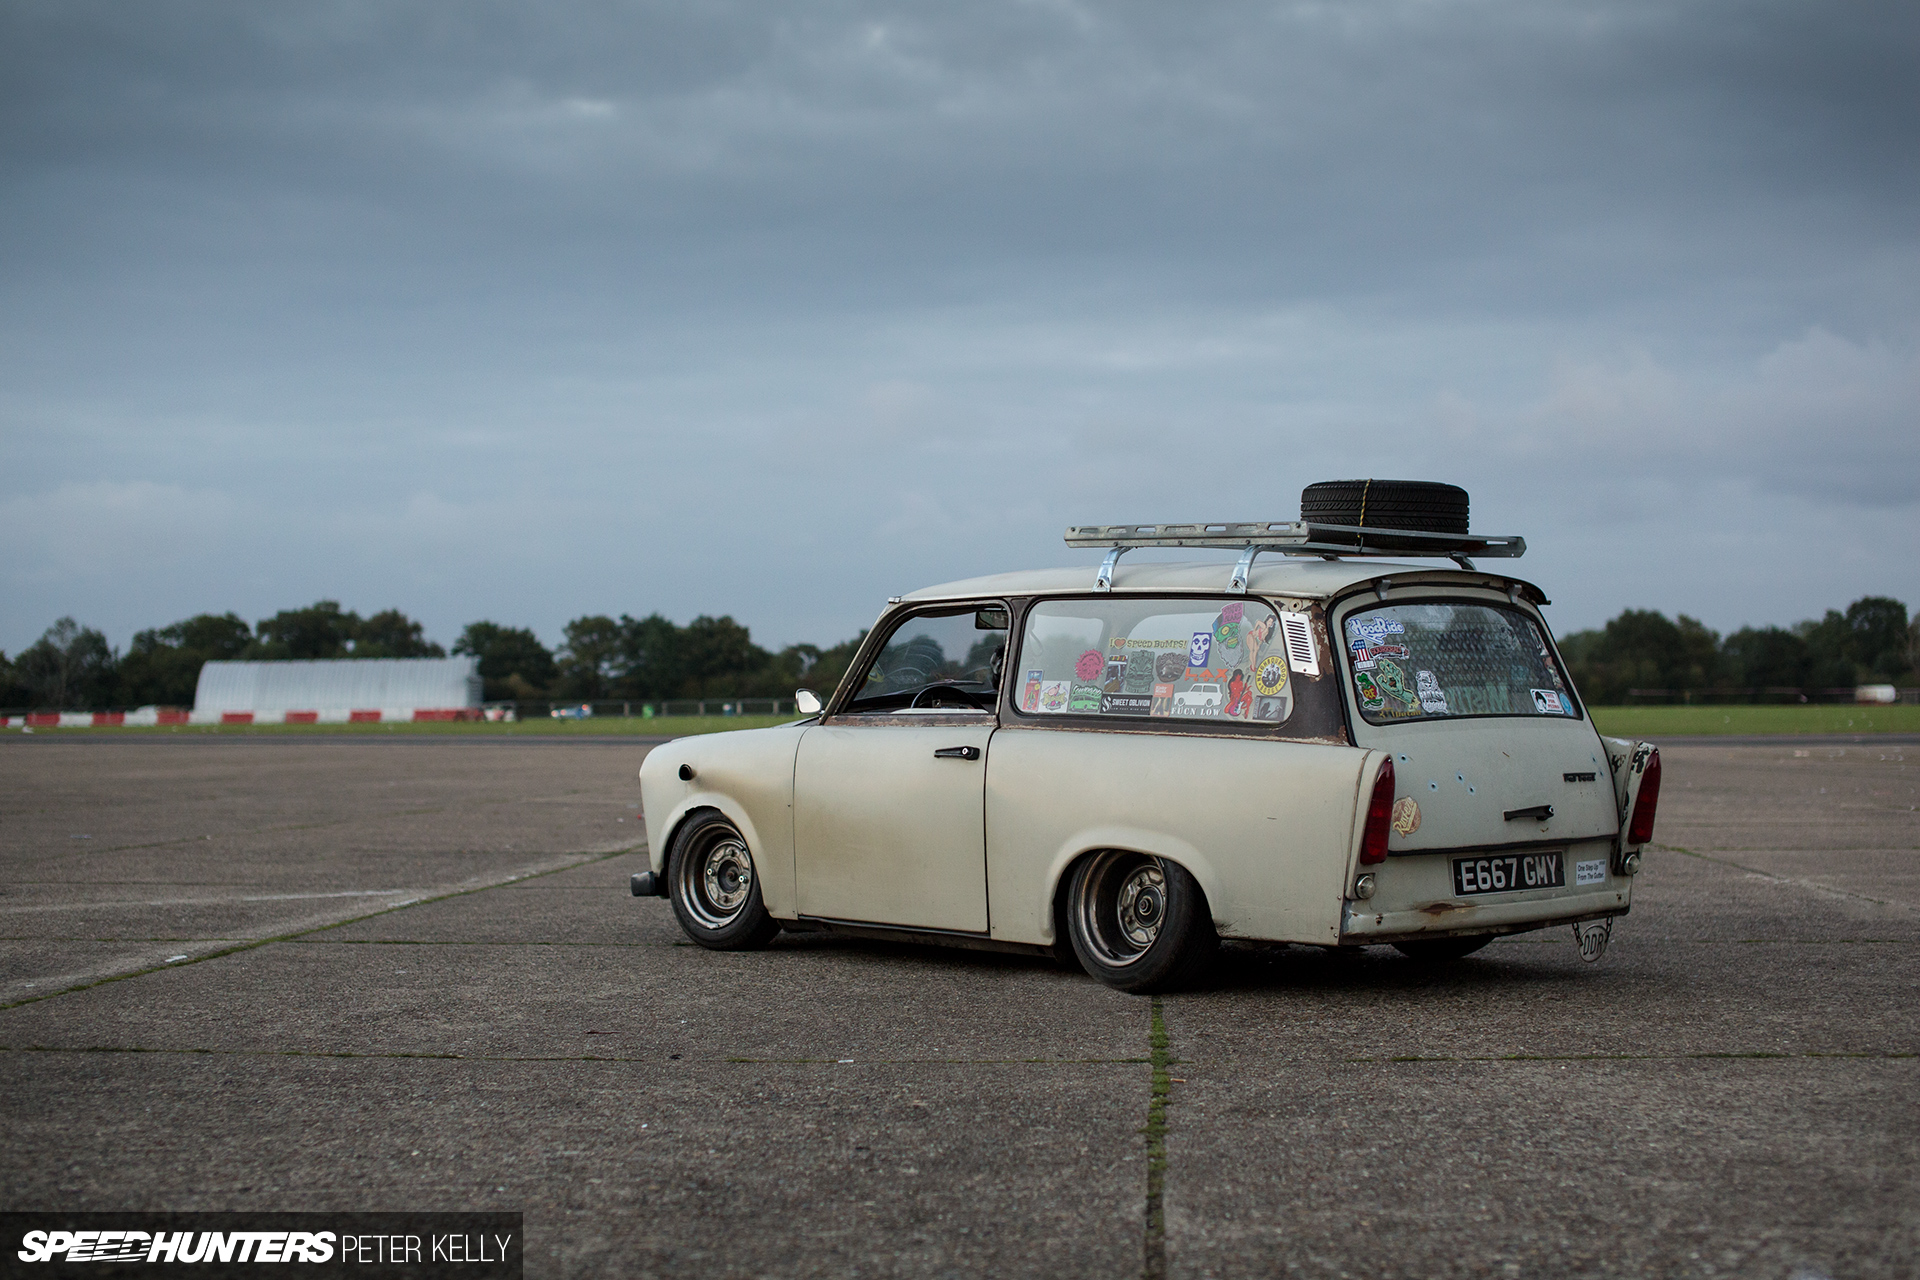 Personal Style Extended The Ratbant Speedhunters